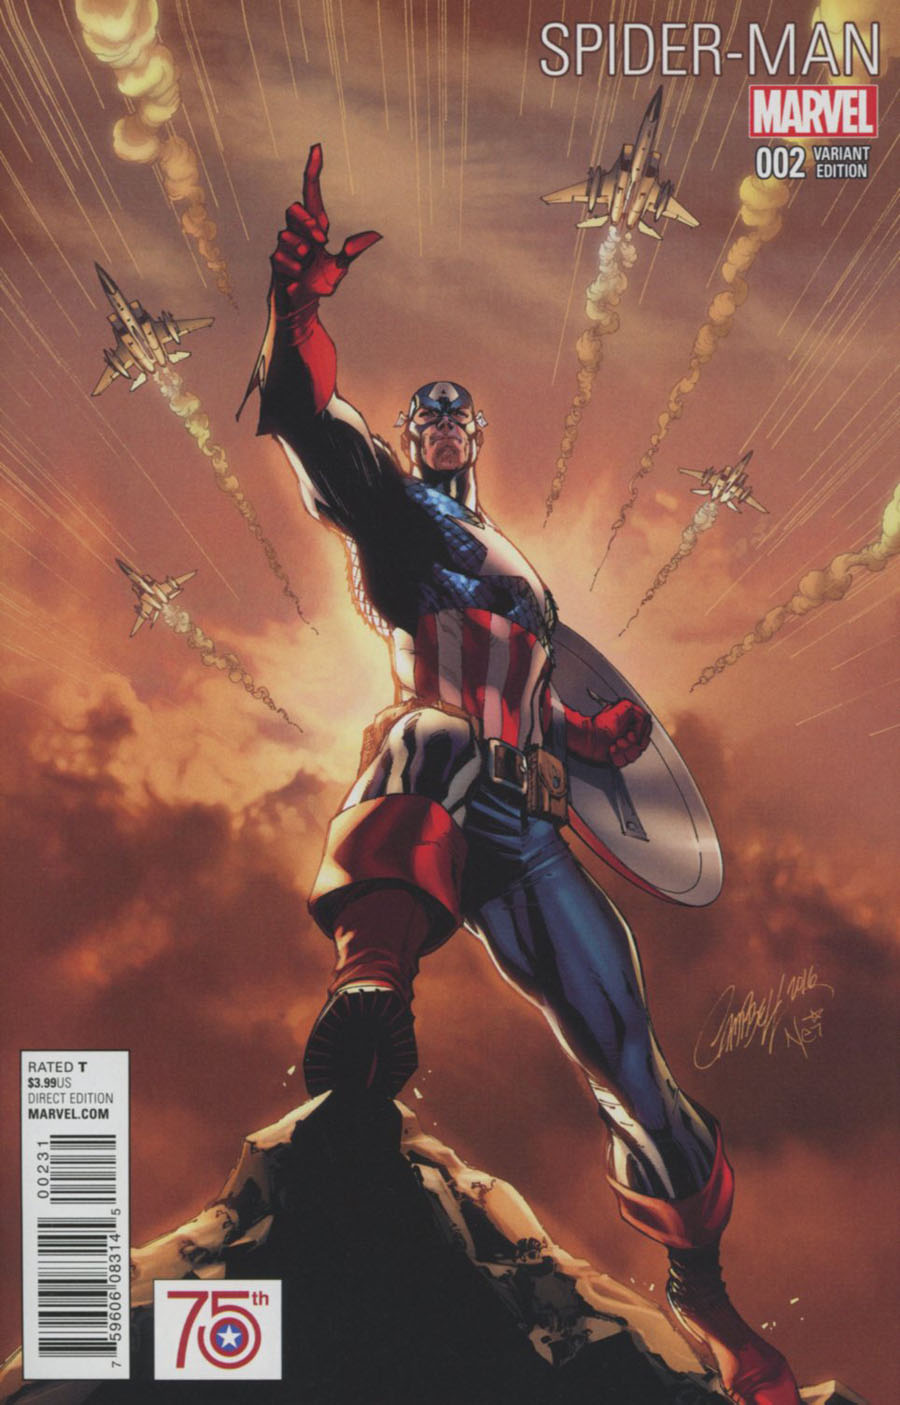 Spider-Man Vol 2 #2 Cover C Incentive J Scott Campbell Captain America 75th Anniversary Variant Cover